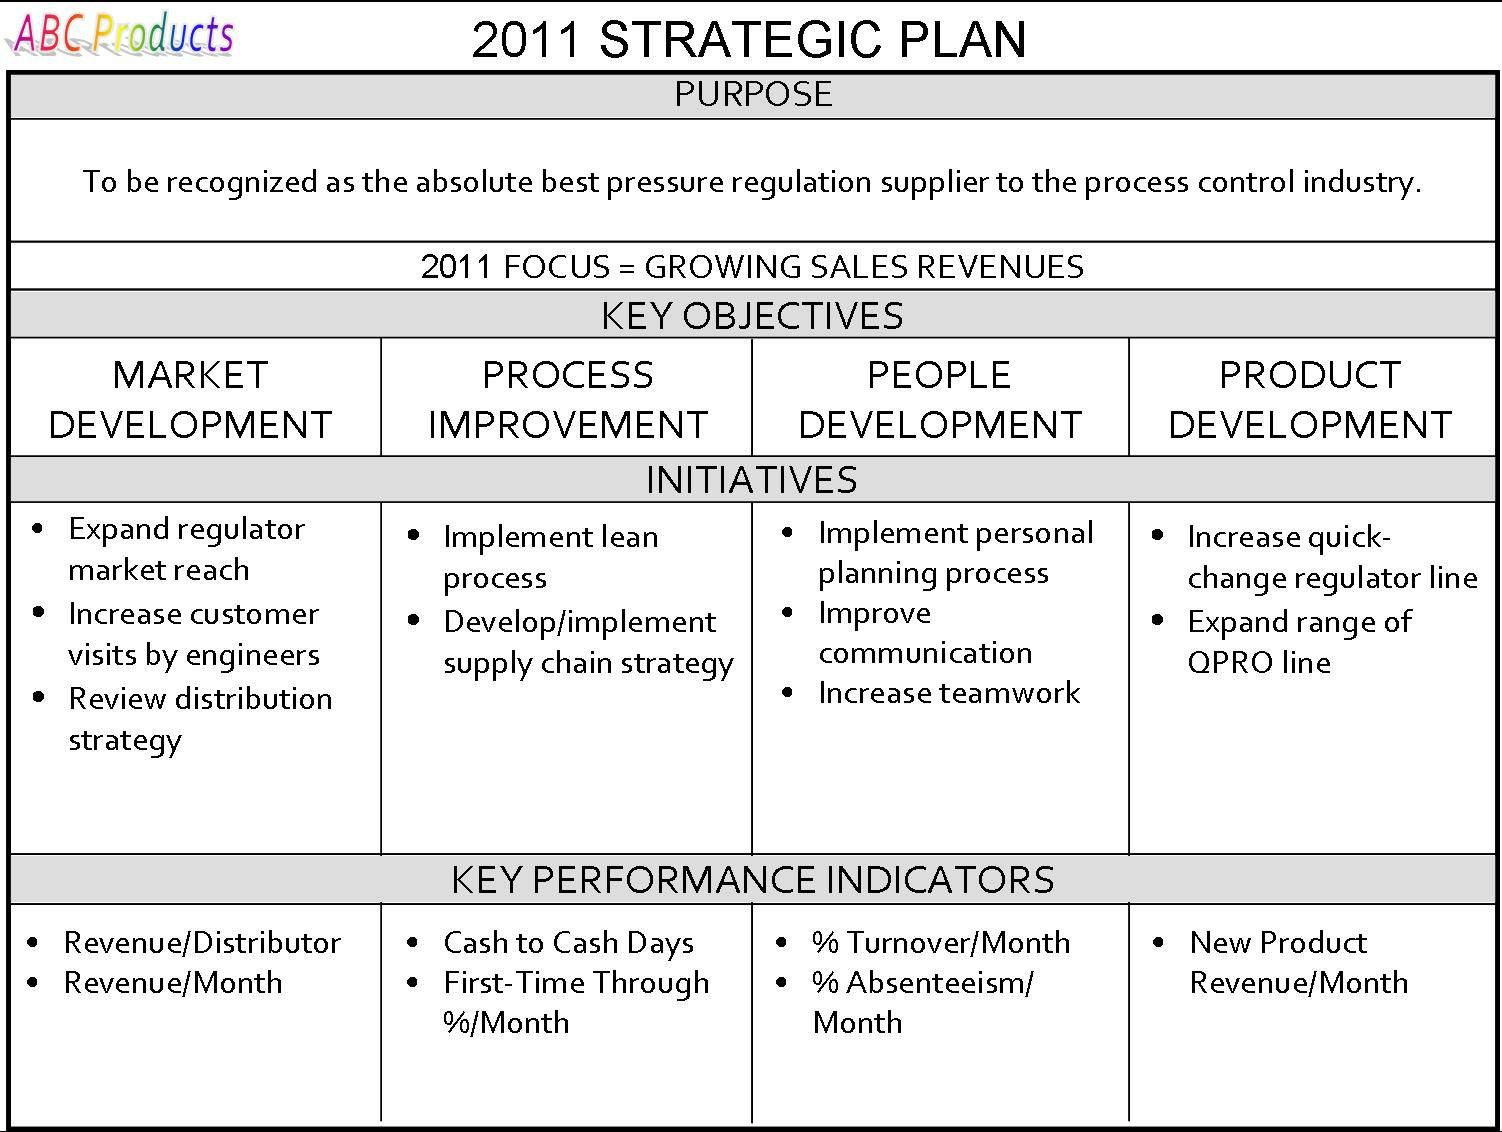 Interview Business Plan Template GenxeG Business Plan For - Business plan for interview template